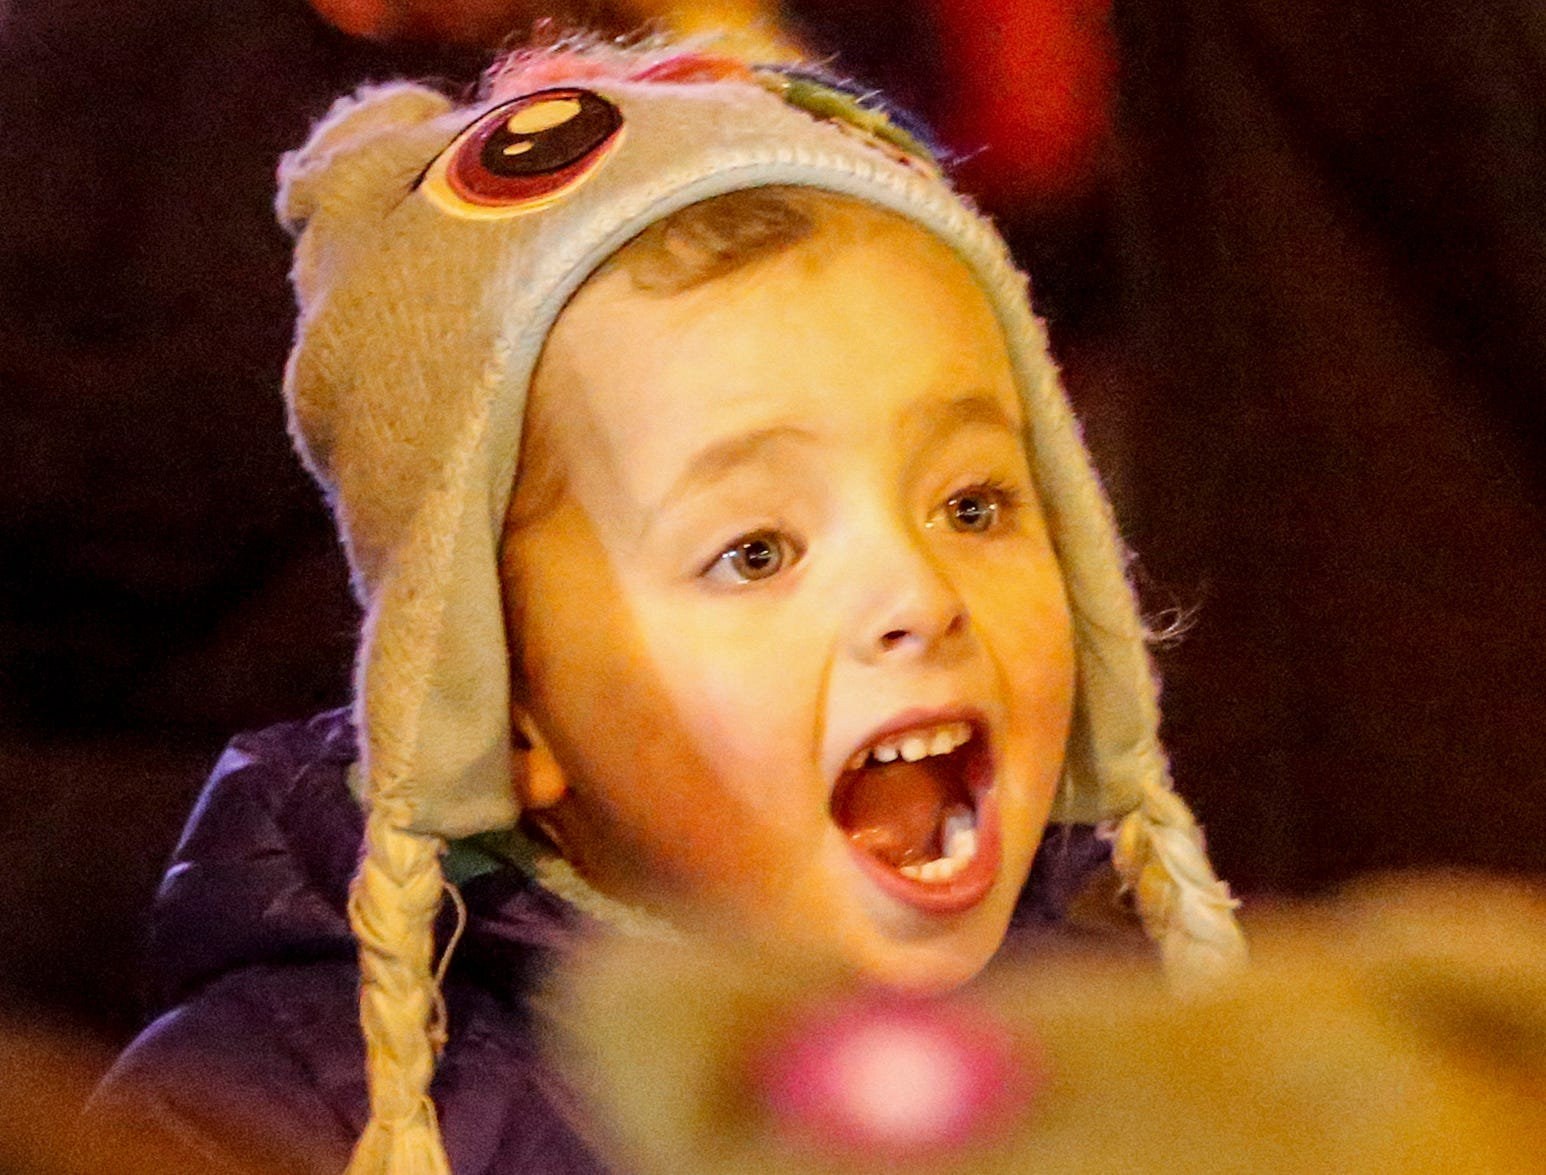 """Adelaide Wood, 5, of Madison, reacts to seeing Santa during the 30th Annual Lakeshore Holiday Parade Wednesday, November 21, 2018, in Manitowoc, Wis. This year's theme was """"Christmas Through the Decades."""" Joshua Clark/USA TODAY NETWORK-Wisconsin"""